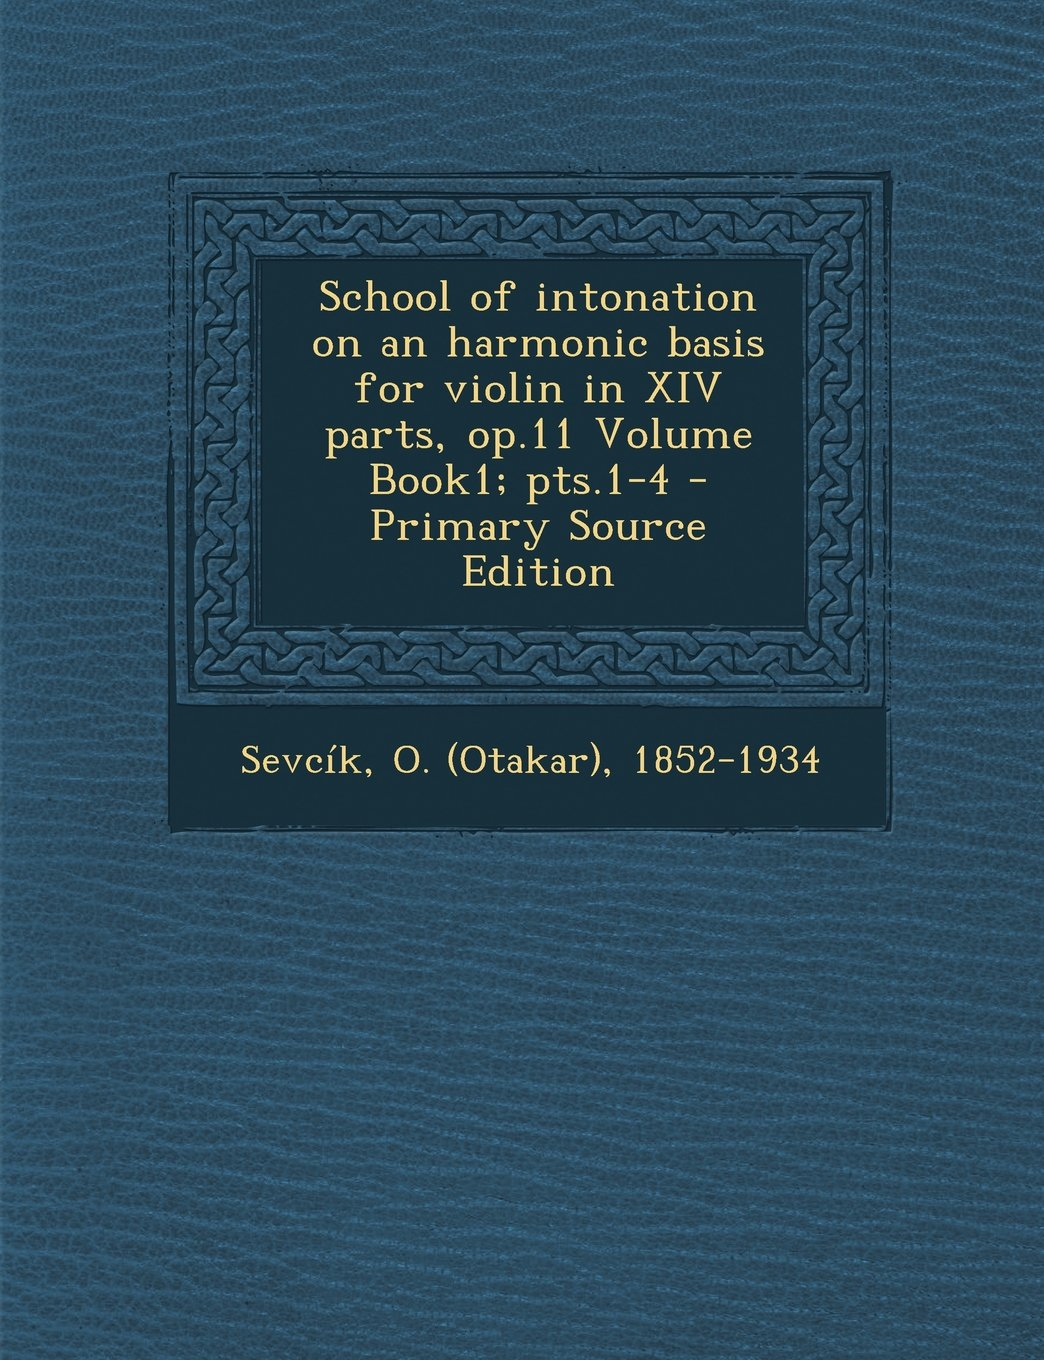 School of intonation on an harmonic basis for violin in XIV parts, op.11 Volume Book1; pts.1-4 pdf